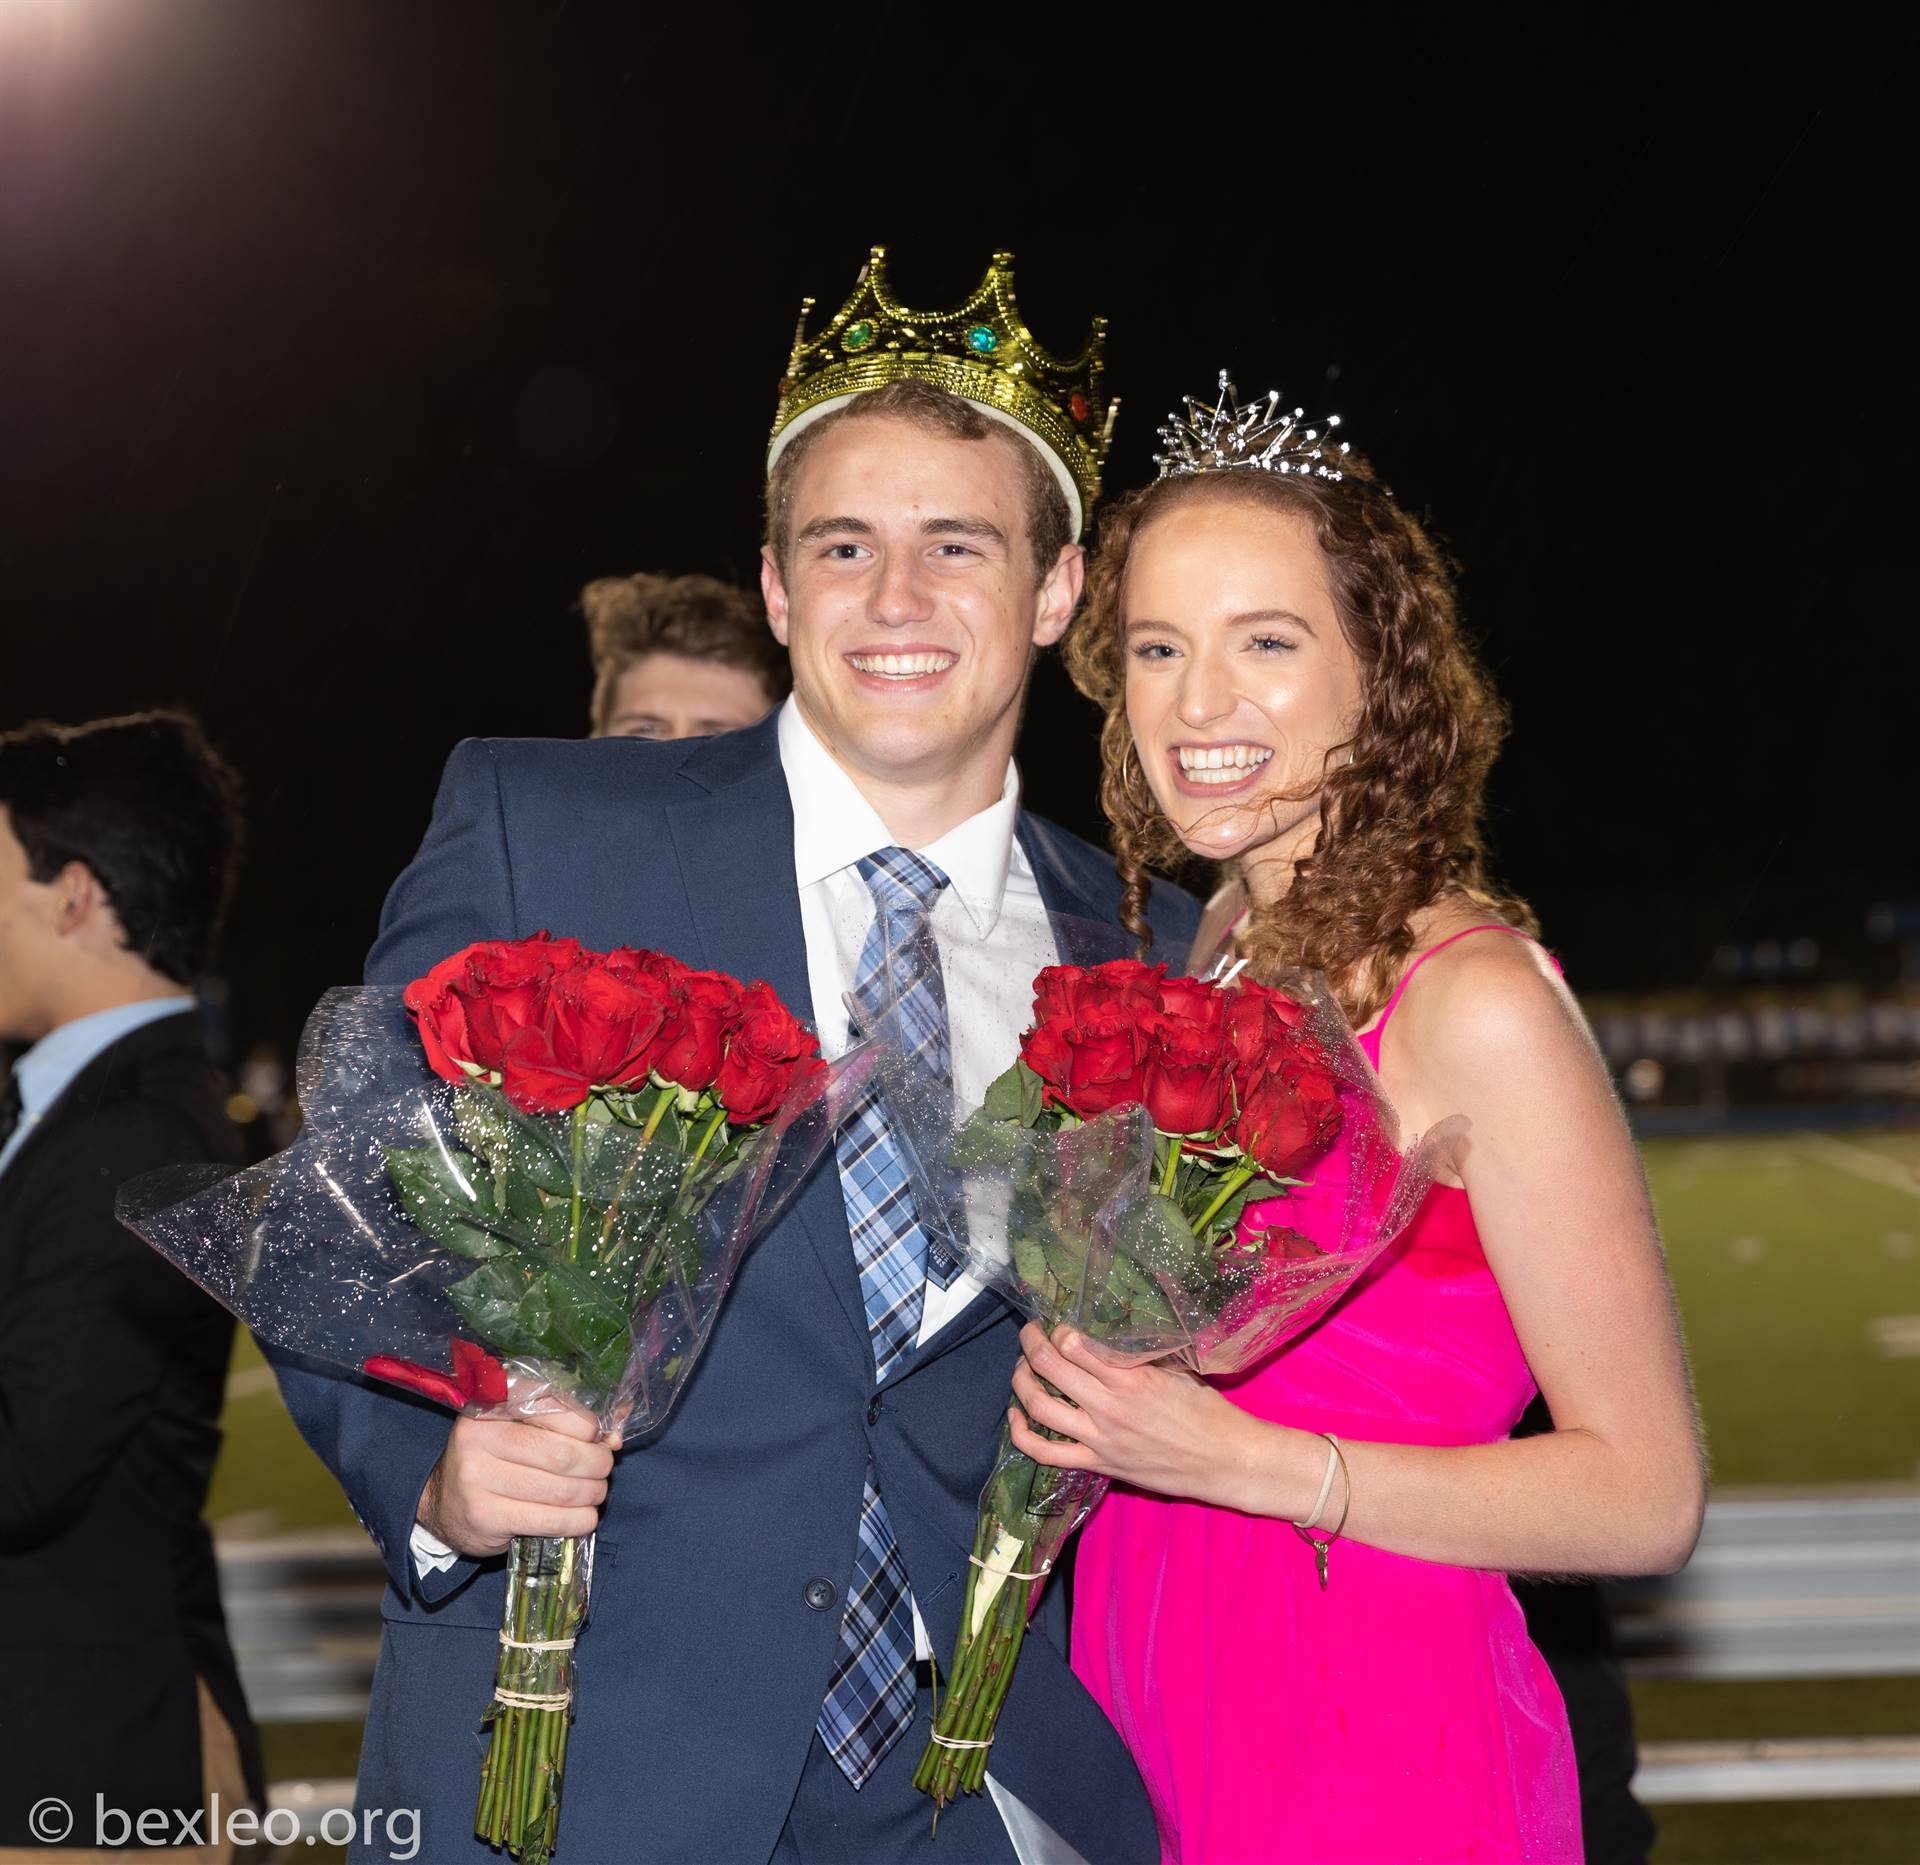 Homecoming King and Queen Ryan Callahan & Annie Politie